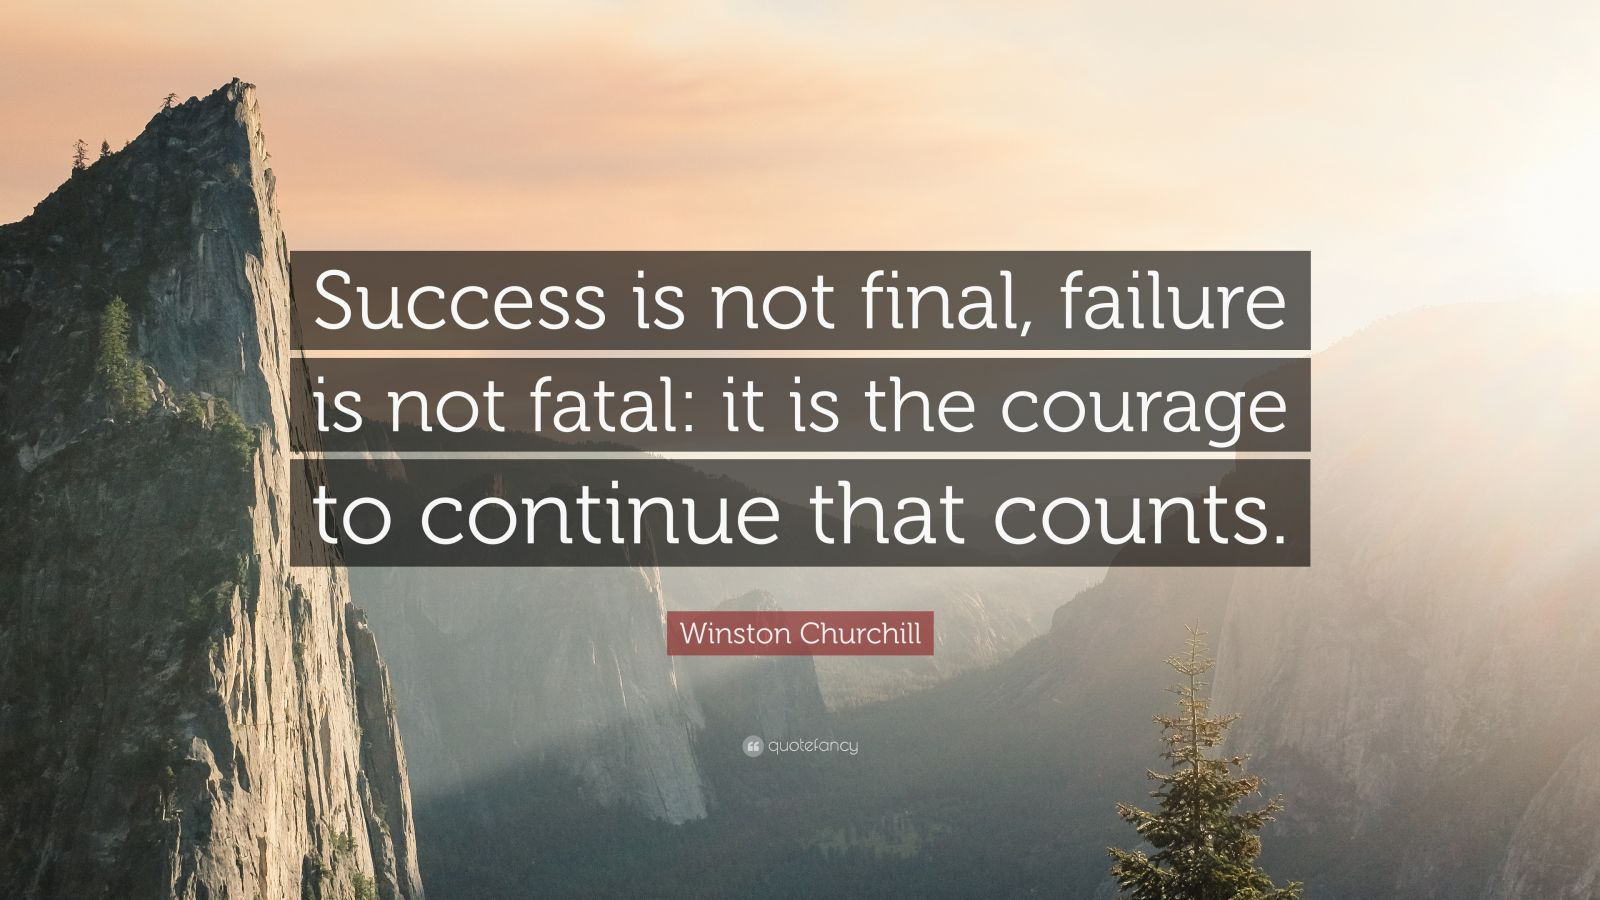 success is not final failure is not fatal Success is not final, failure is not fatal - it is the courage to continue that counts - winston churchillrecently i was sitting on my balcony talking to a friend.